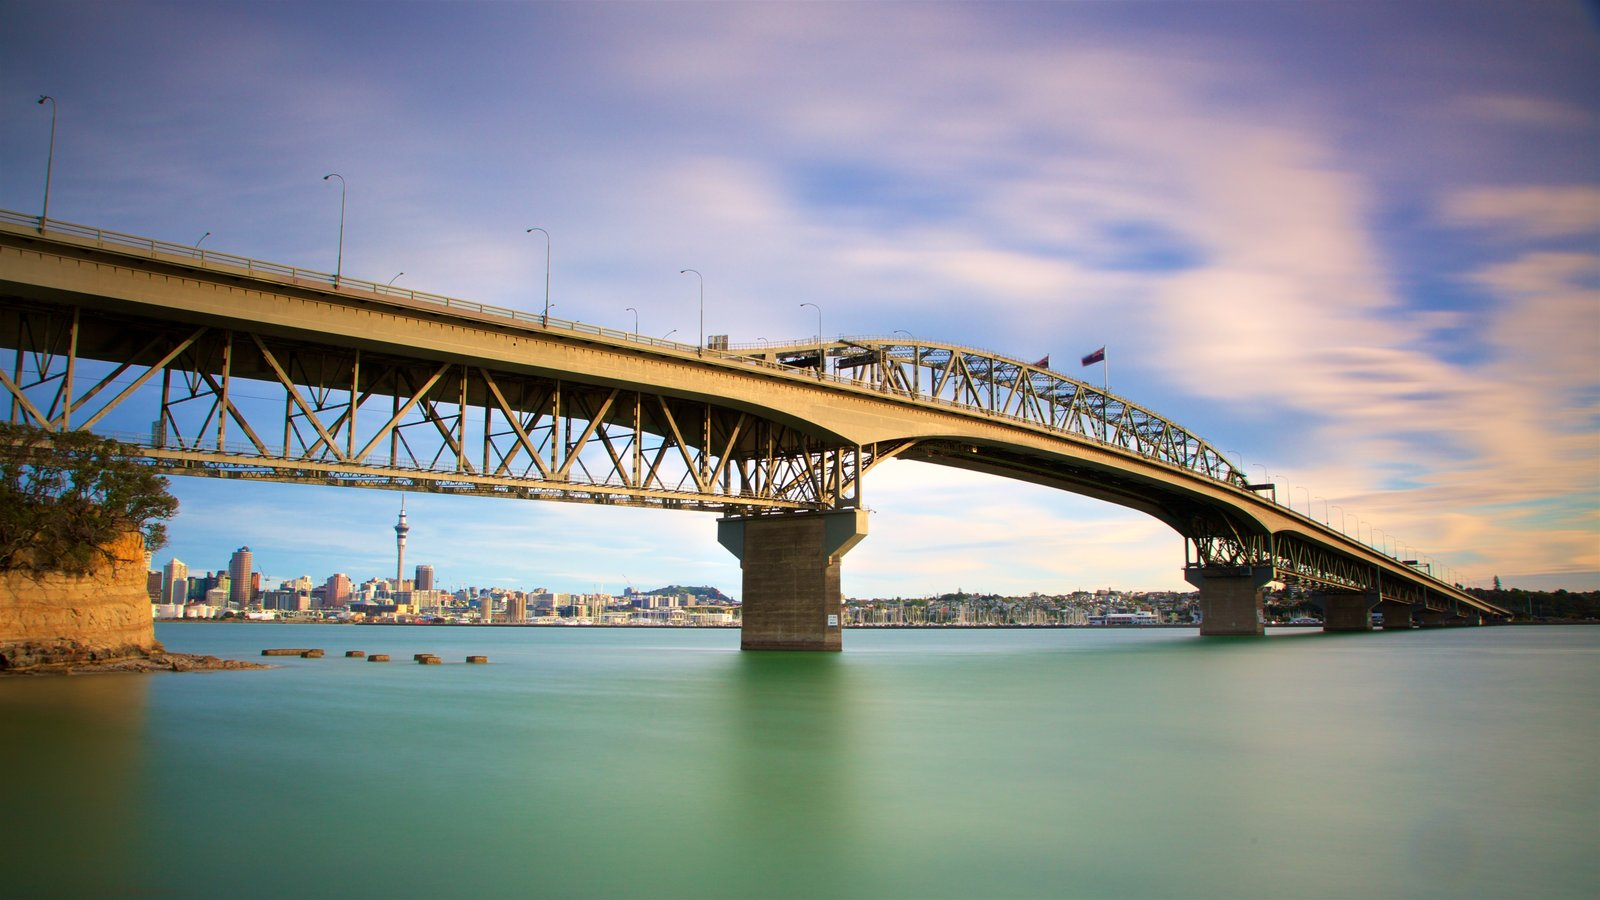 Harbour Bridge showing a city, a bay or harbor and a sunset